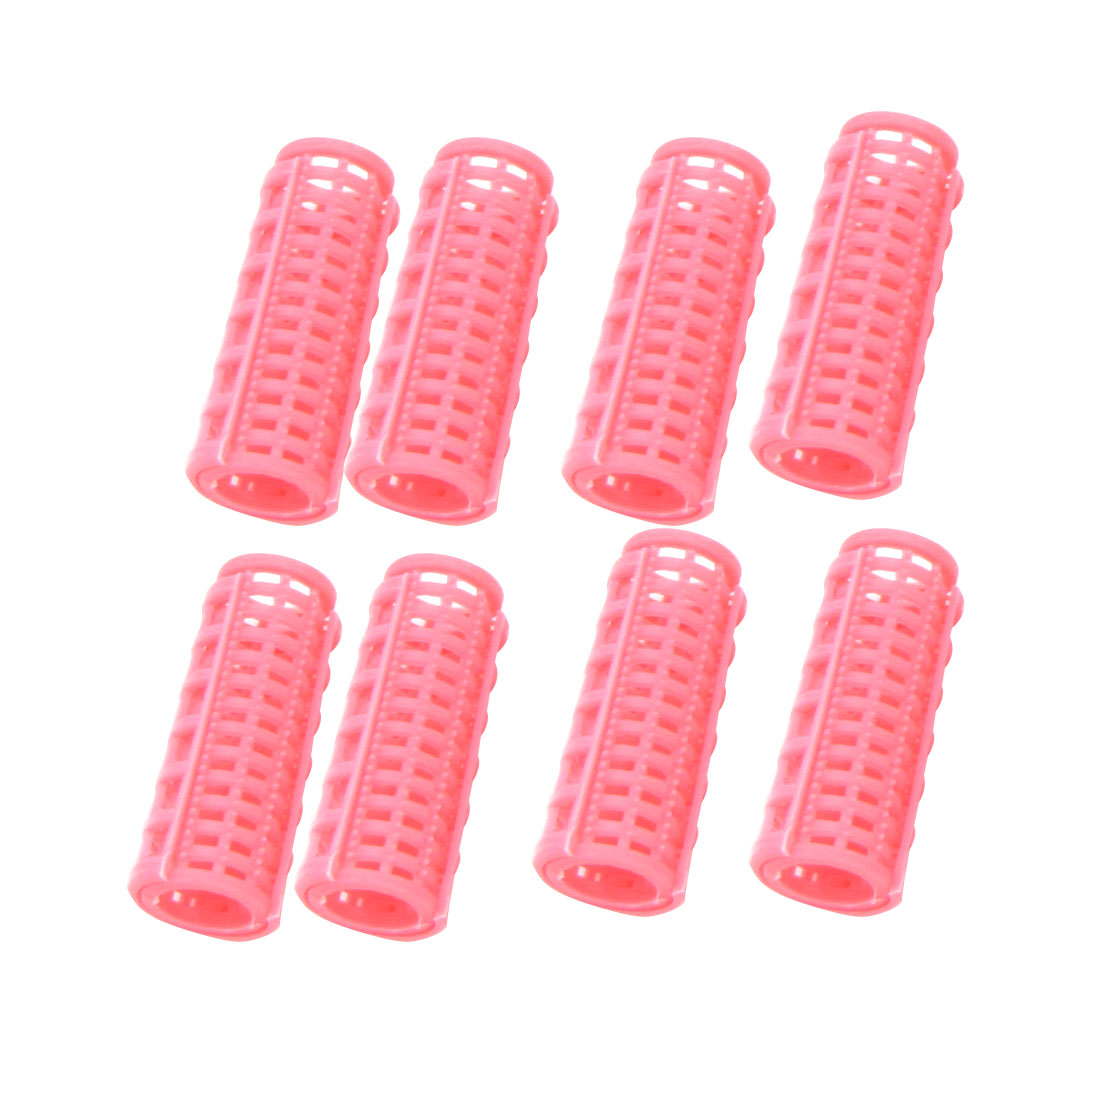 Unique Bargains 8 x Portable Lady Pink Plastic DIY Hairstyling Hair Curlers Rollers